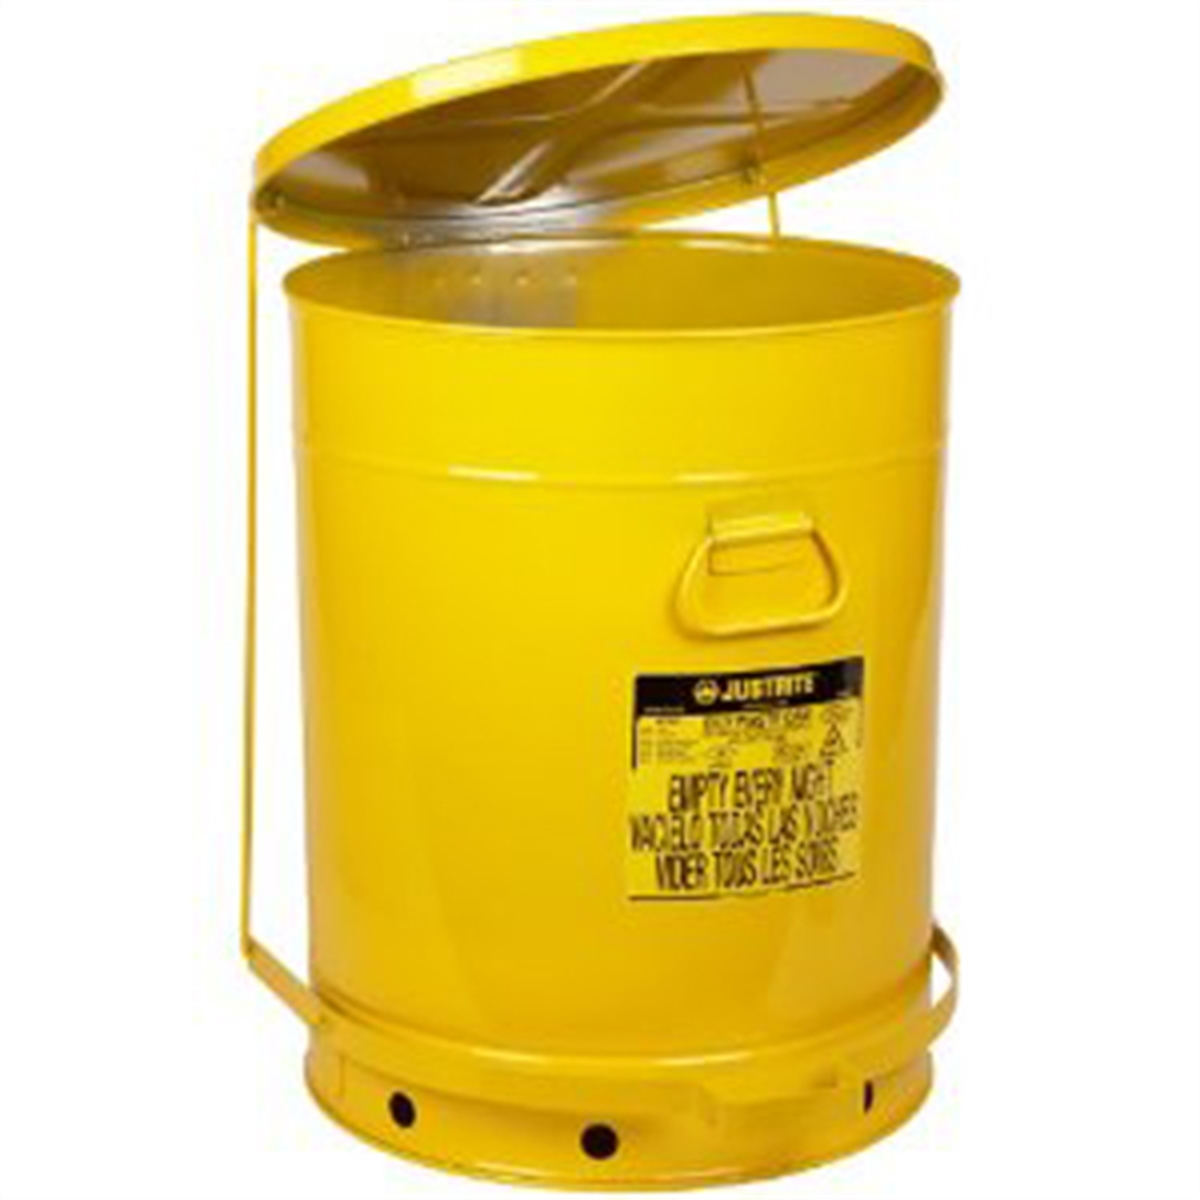 21 Gal Yellow Oily Waste Can